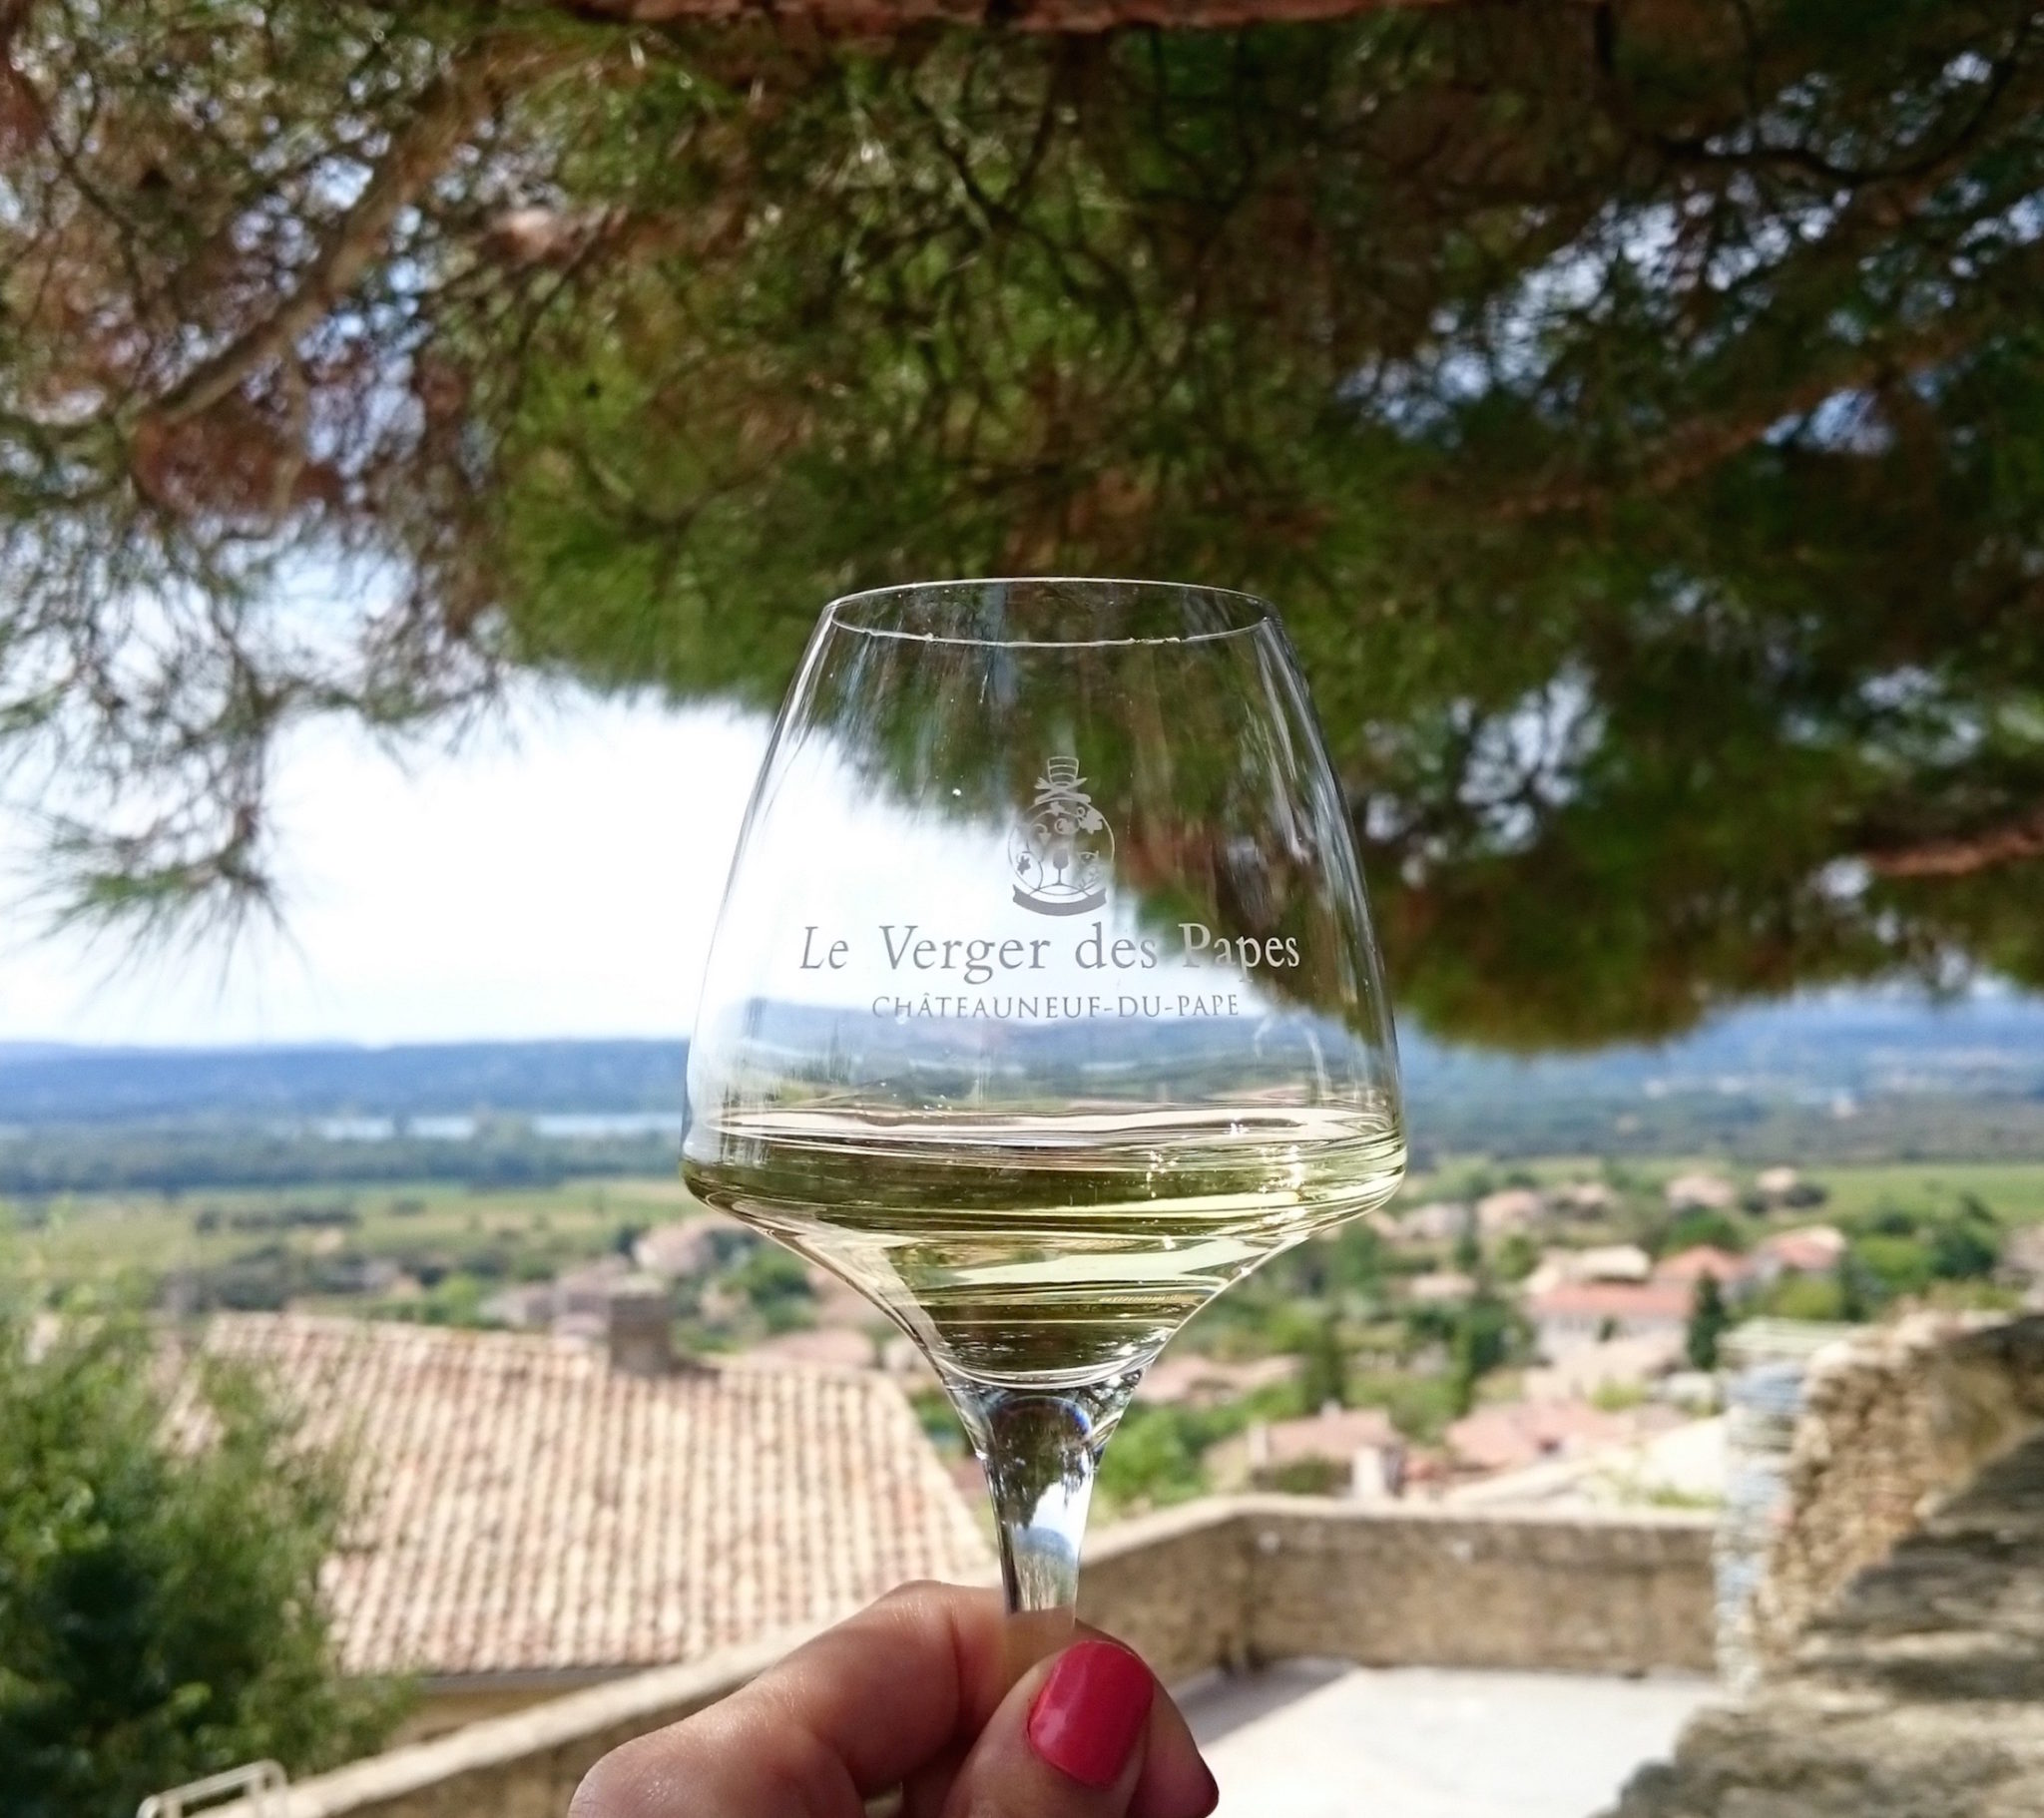 a-lovely-planet-chateauneuf-du-pape-le-verger